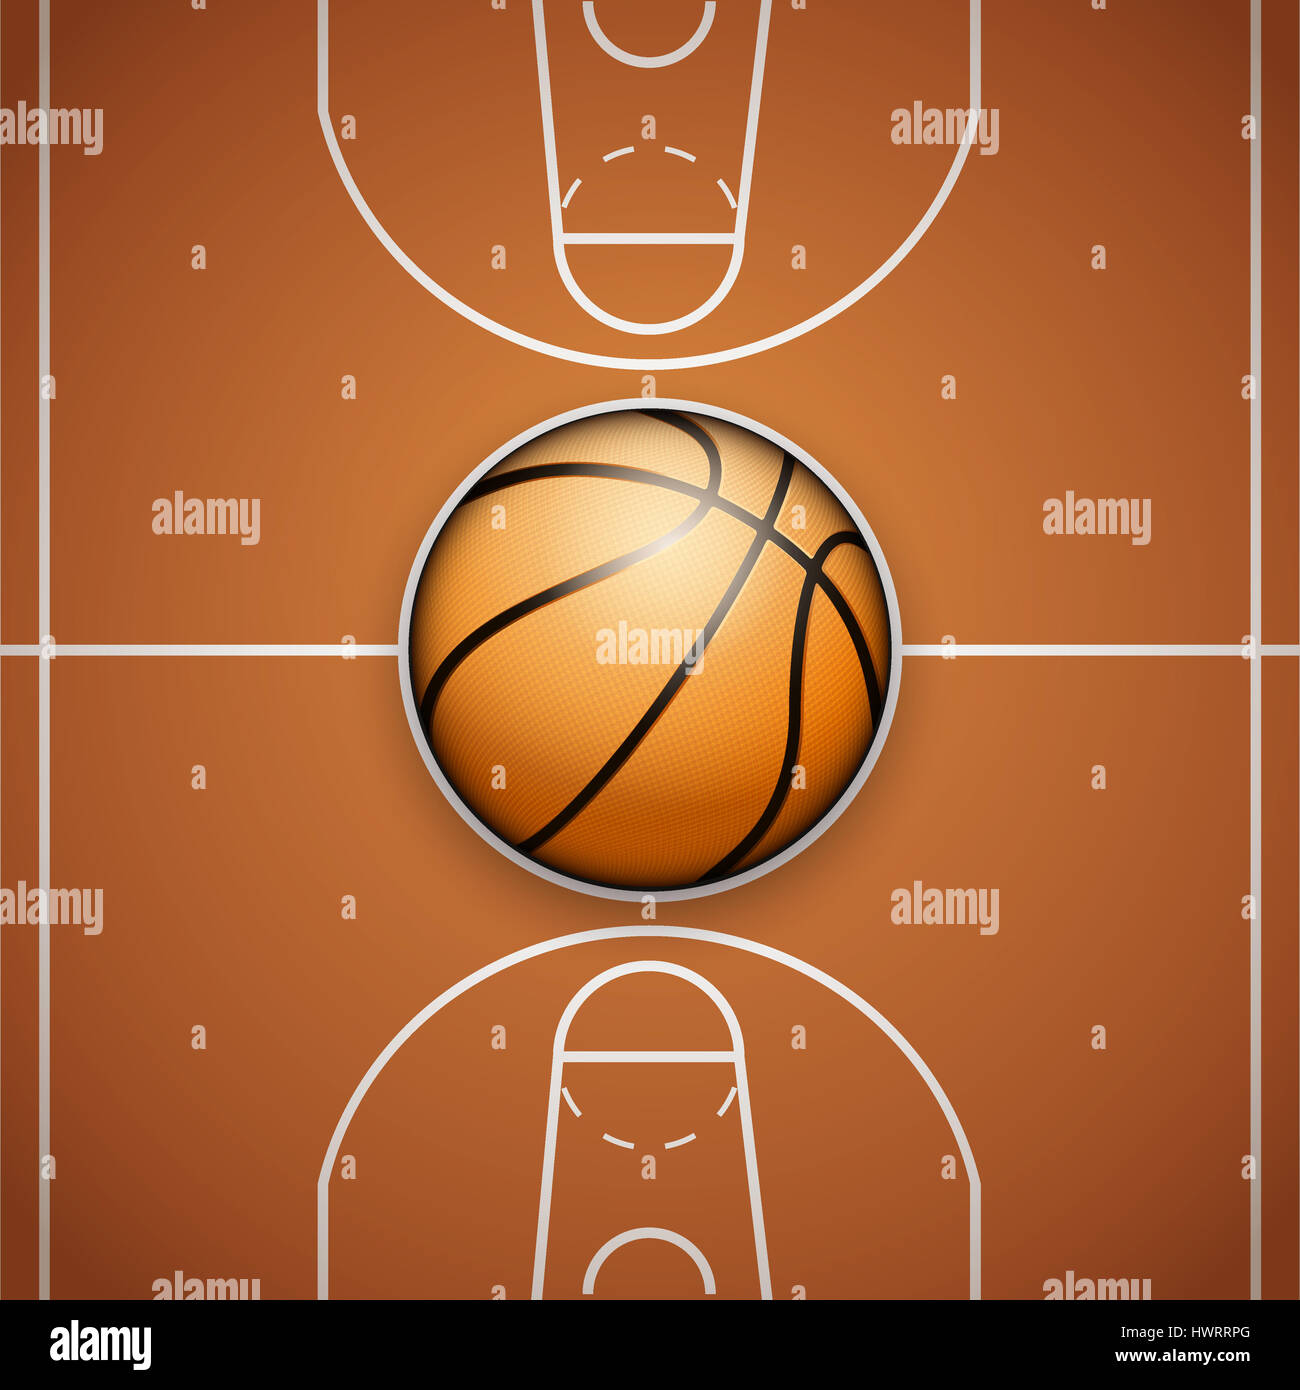 Basketball Sport Poster Flyer Background Stockfotos & Basketball ...